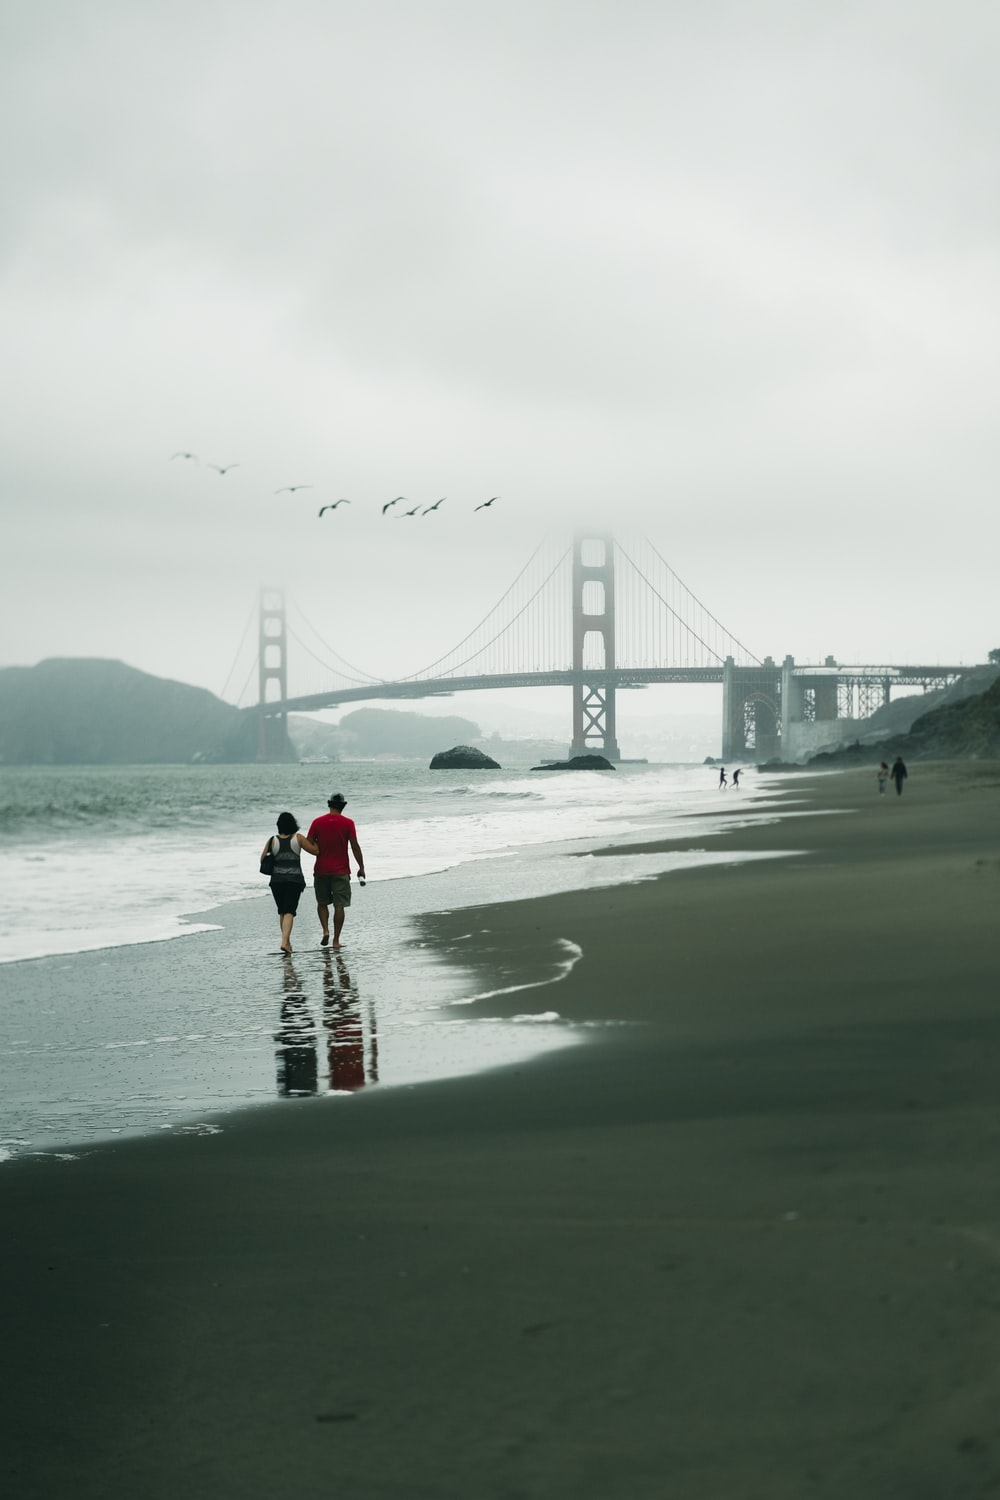 woman in red jacket and black pants walking on beach during daytime